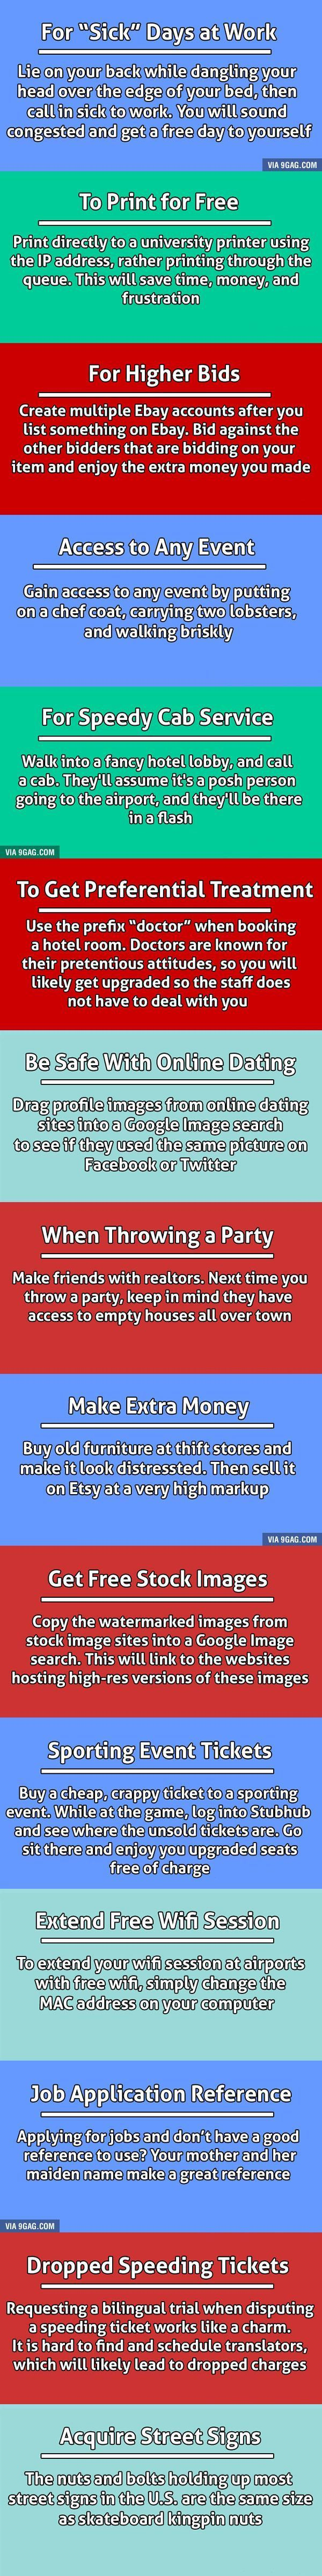 15 Unethical Life Hacks To Help You Get What You Want. #LifeHacks